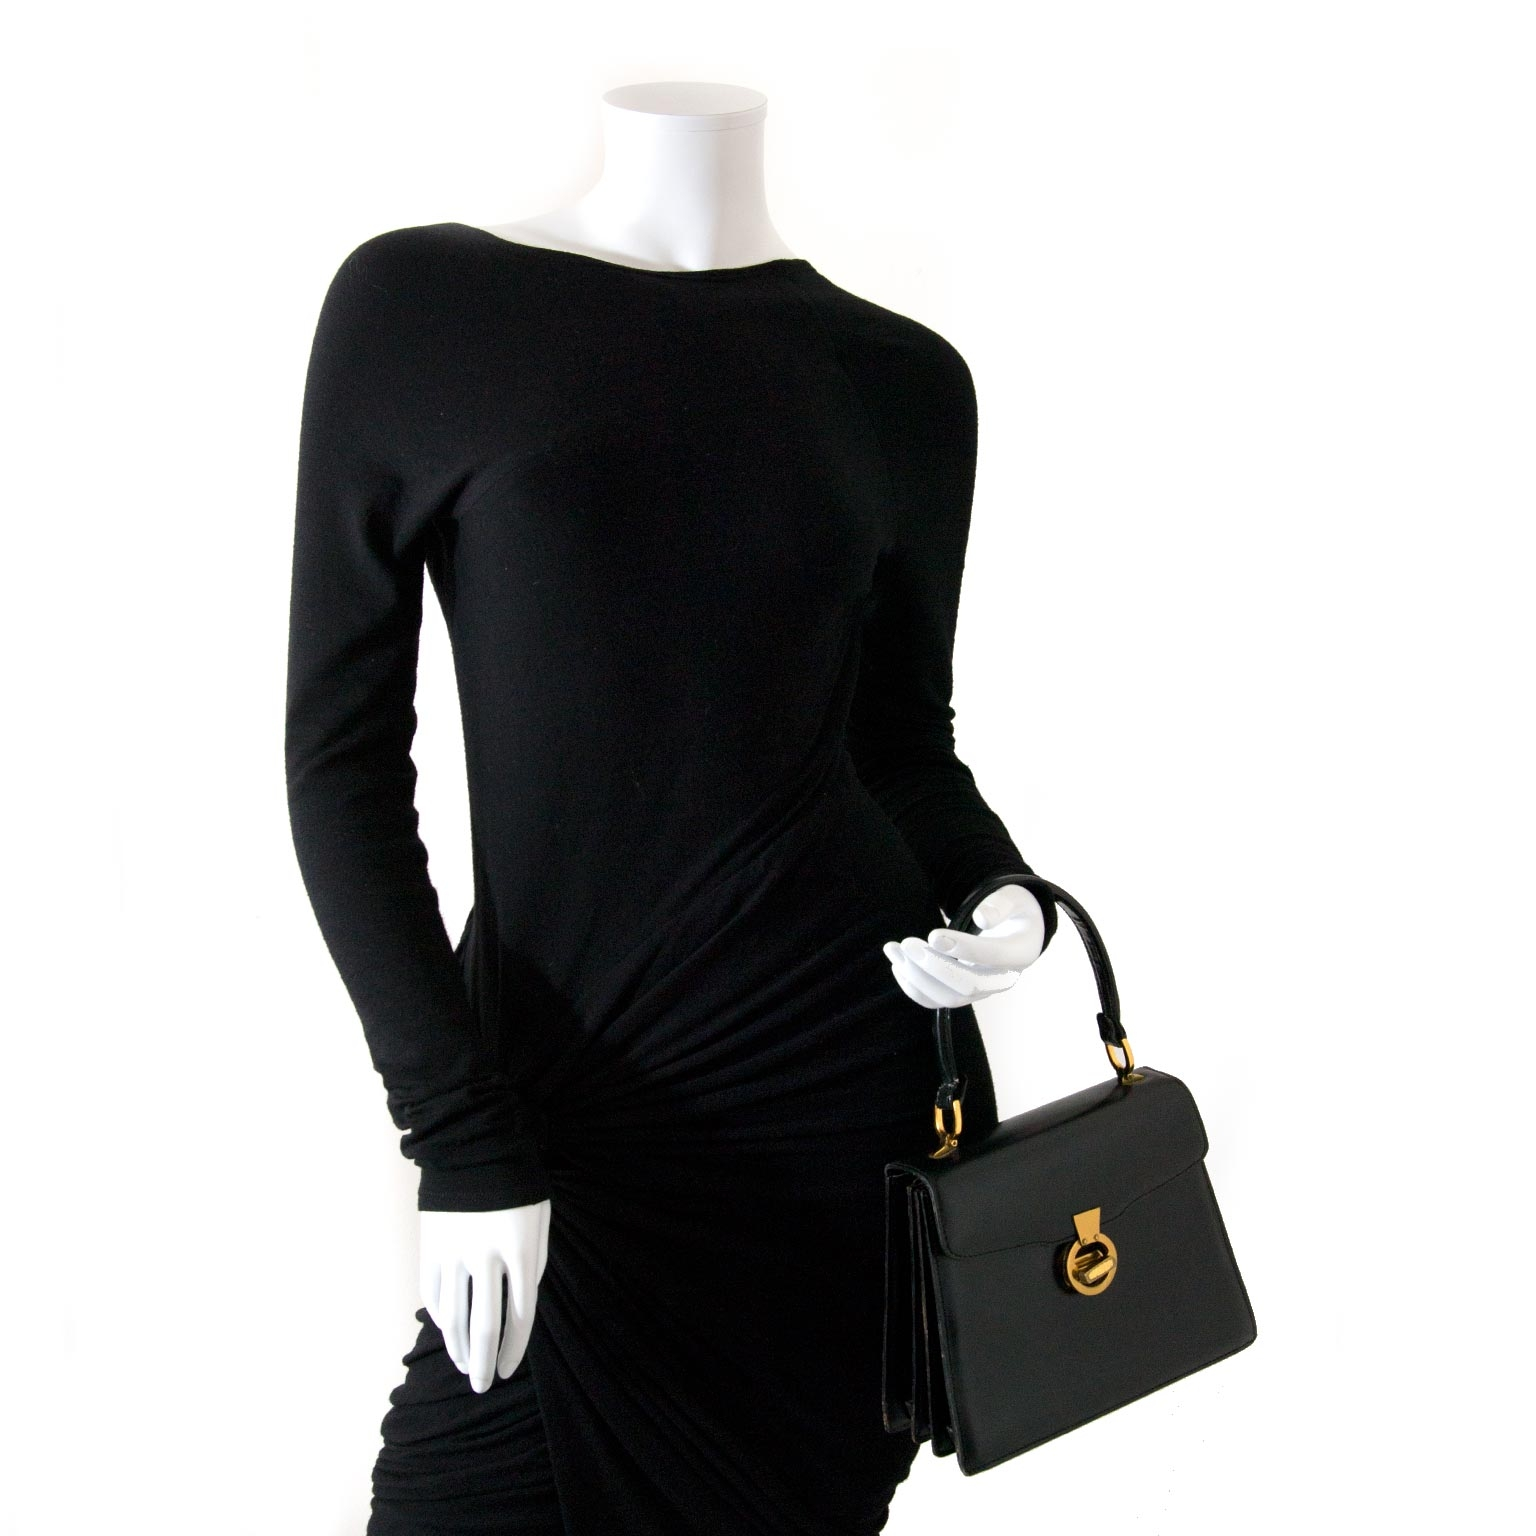 We buy and sell your authentic Delvaux Vintage Black Leather Top Handle Bag